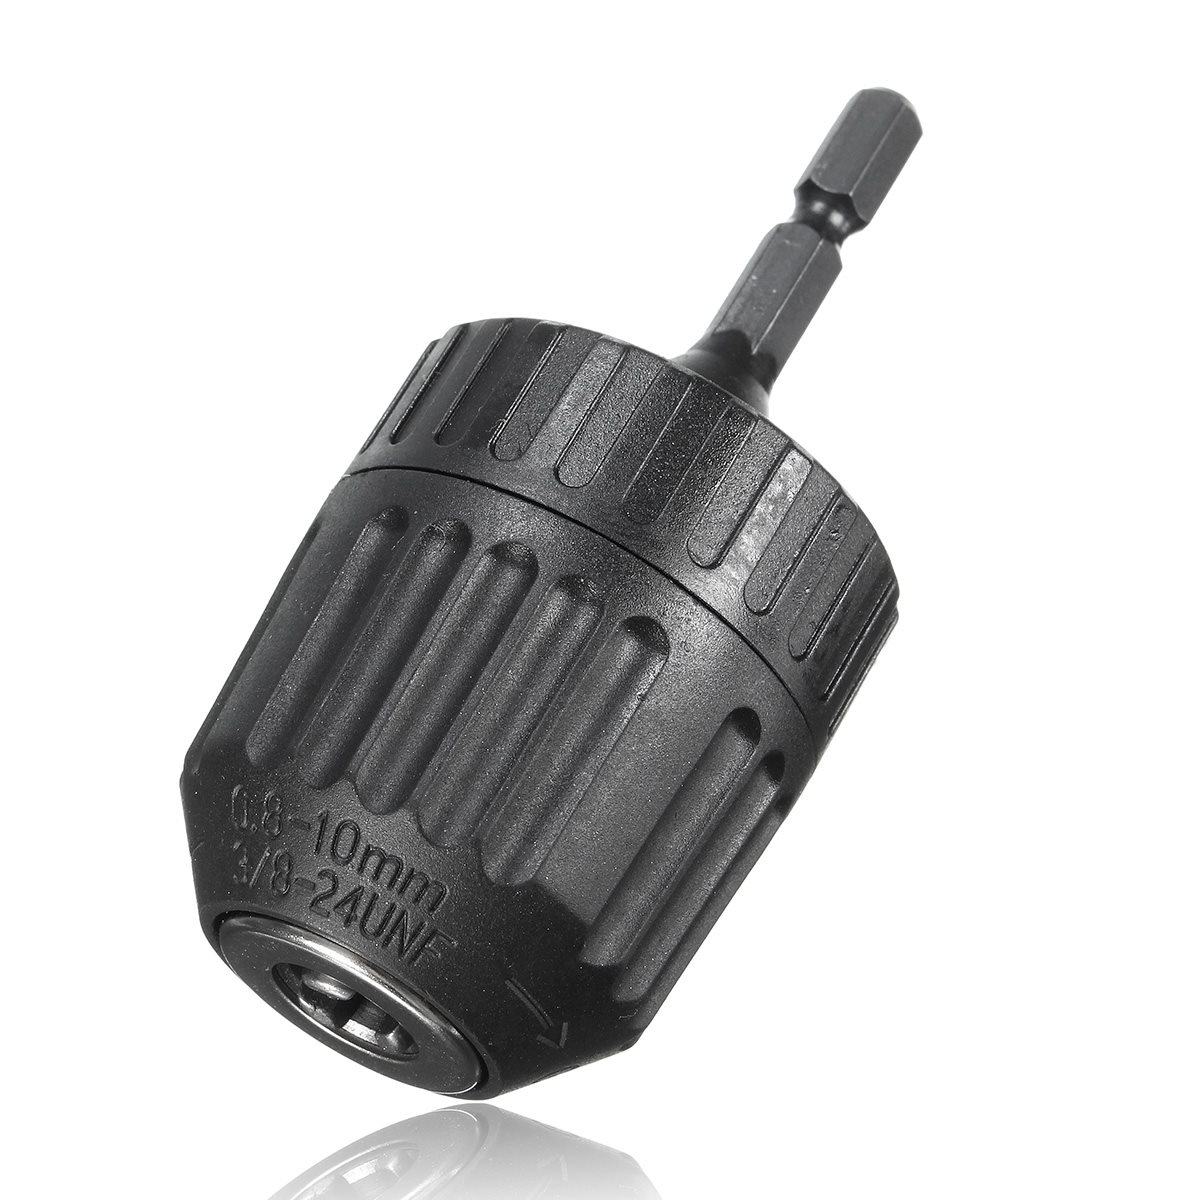 High Quality 1PC 0.8-10mm Keyless Mini Drill Chuck Adaptor Converter 3/8 24UNF + 1/4 Hex Shank SDS Power Tool Accessories free shipping tool holding fixture or sds drill chuck for bosch gbh36vf gbh2 26dfr gbh2 26 gbh4 32dfr gbh3 28 high quality